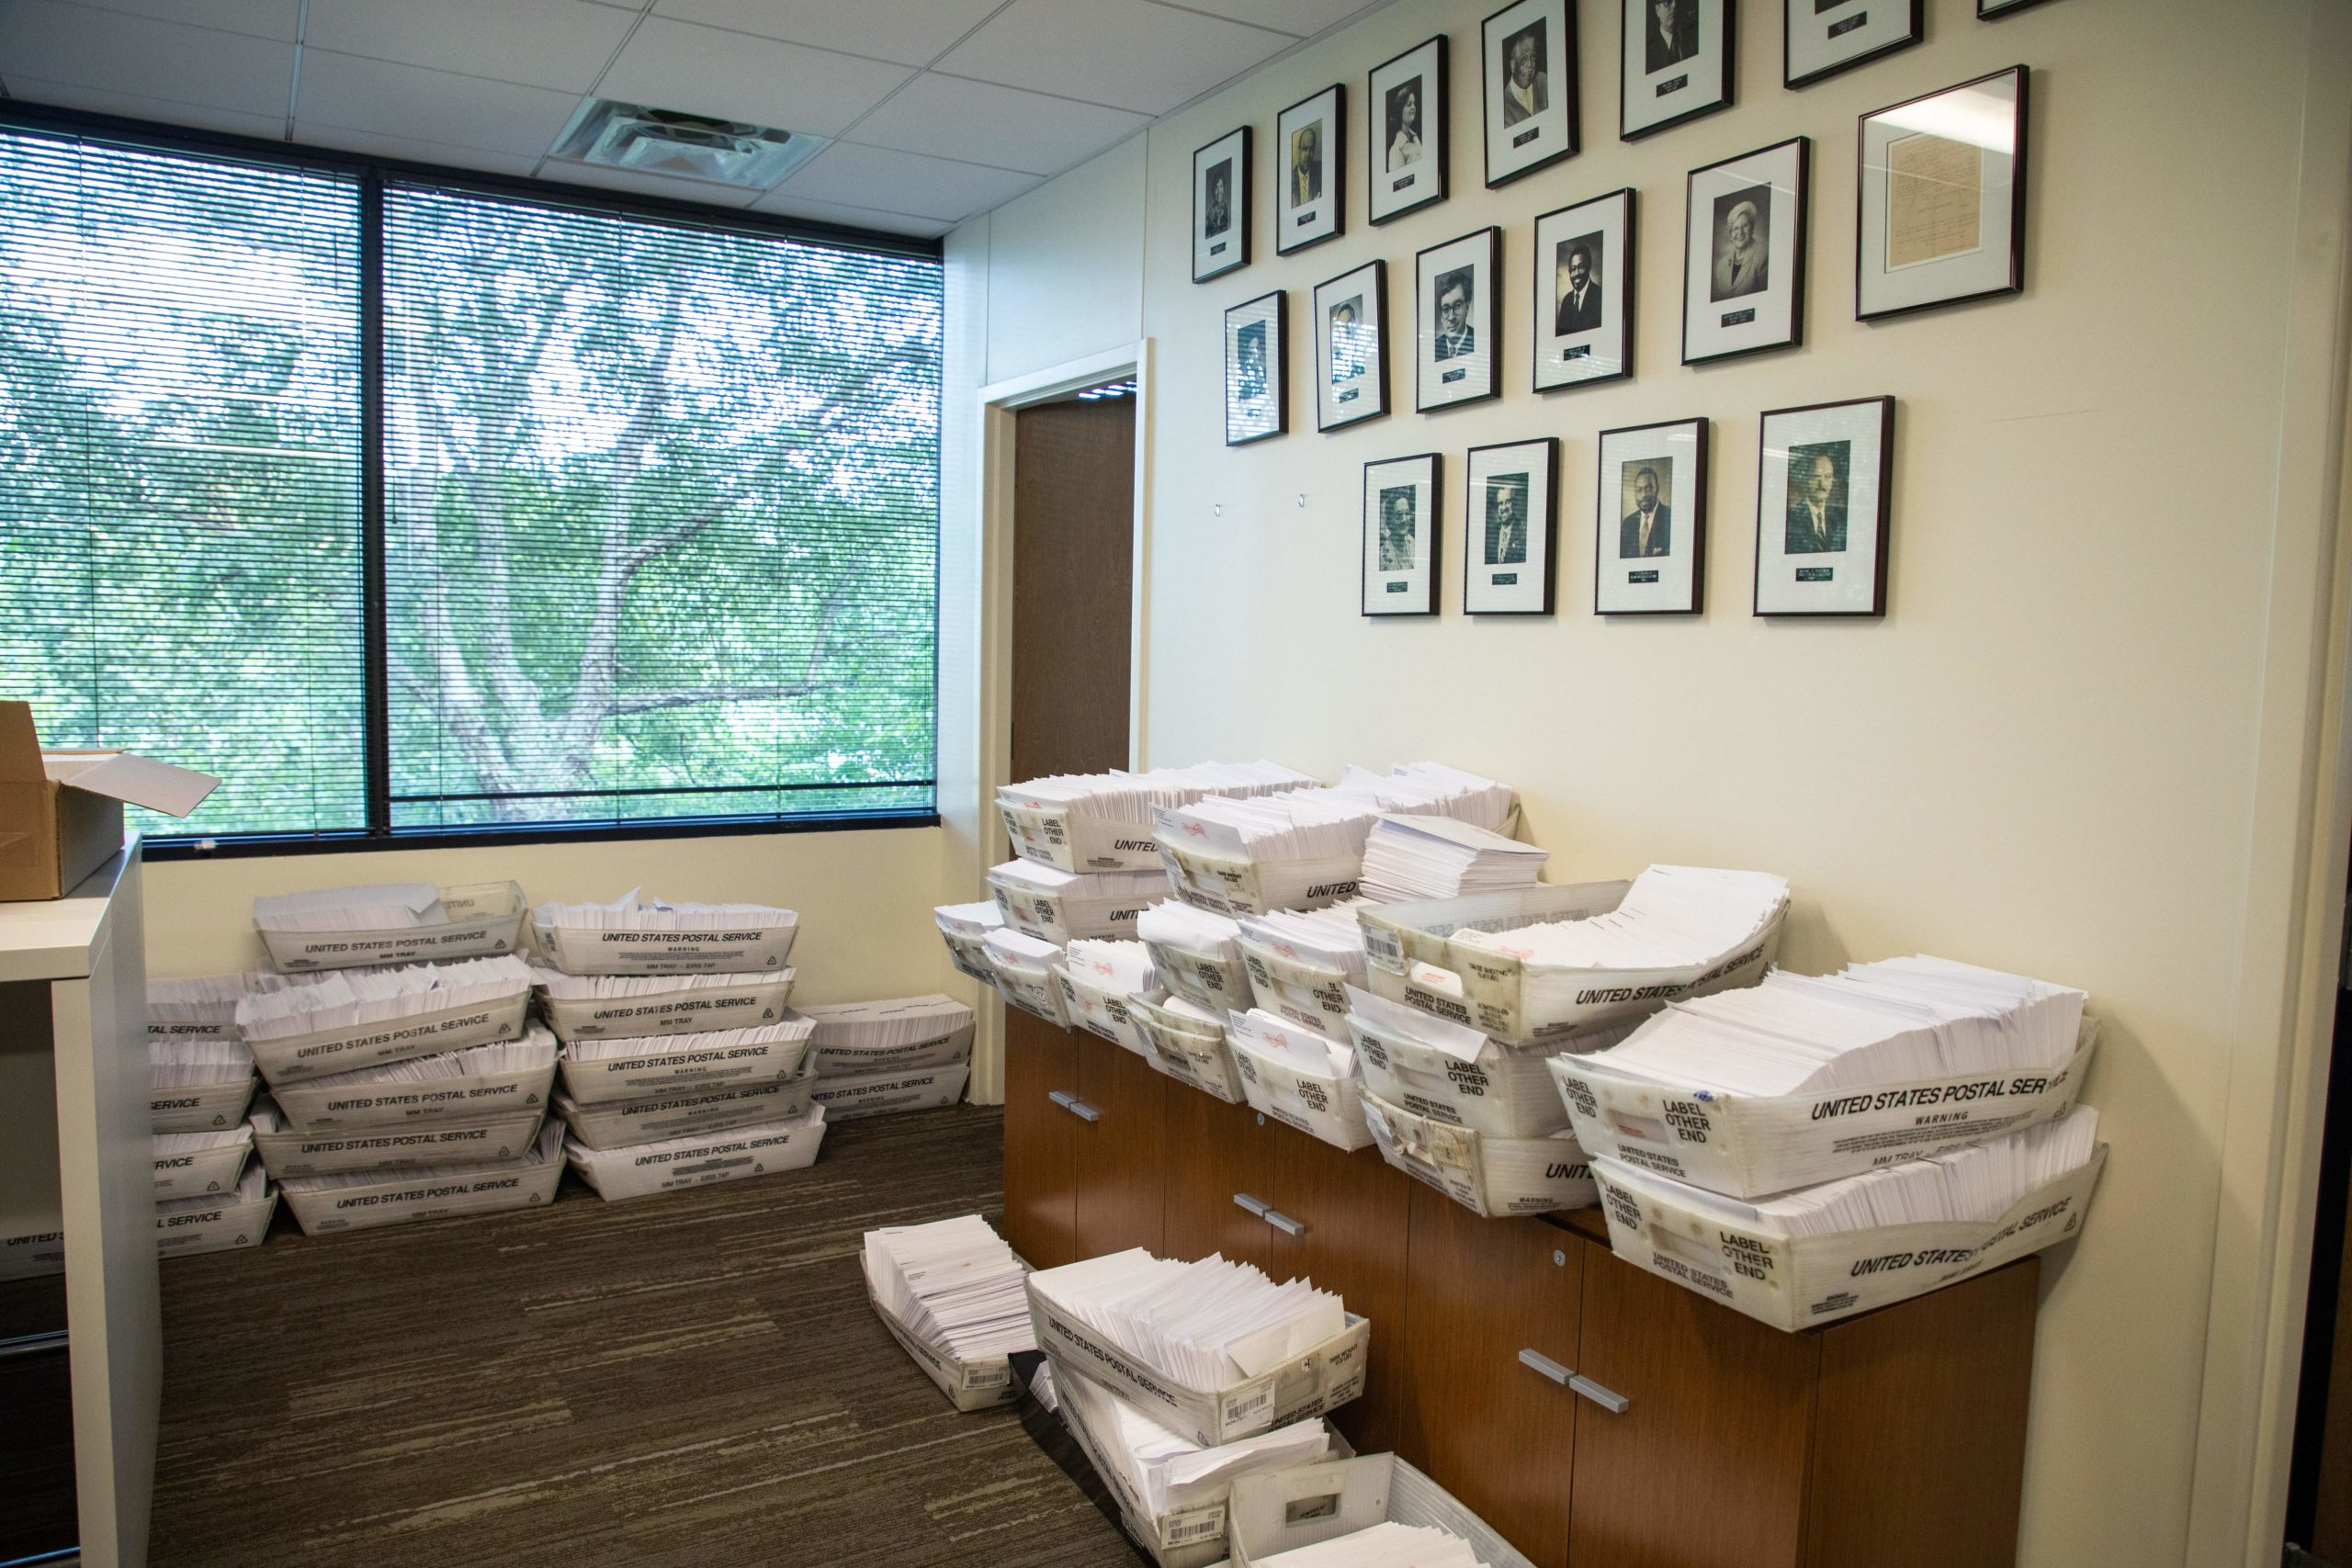 Large boxes of envelopes are seen as absentee ballot election workers stuff ballot applications at the Mecklenburg County Board of Elections office in Charlotte, North Carolina on September 4, 2020. - The US election is officially open: North Carolina on September 4, 2020 launched vote-by-mail operations for the November 3 contest between President Donald Trump and Joe Biden, which is getting uglier by the day. Worries about the unabated spread of the coronavirus are expected to prompt a major increase in the number of ballots cast by mail, as Americans avoid polling stations. (Photo by Logan Cyrus / AFP) (Photo by LOGAN CYRUS/AFP via Getty Images)